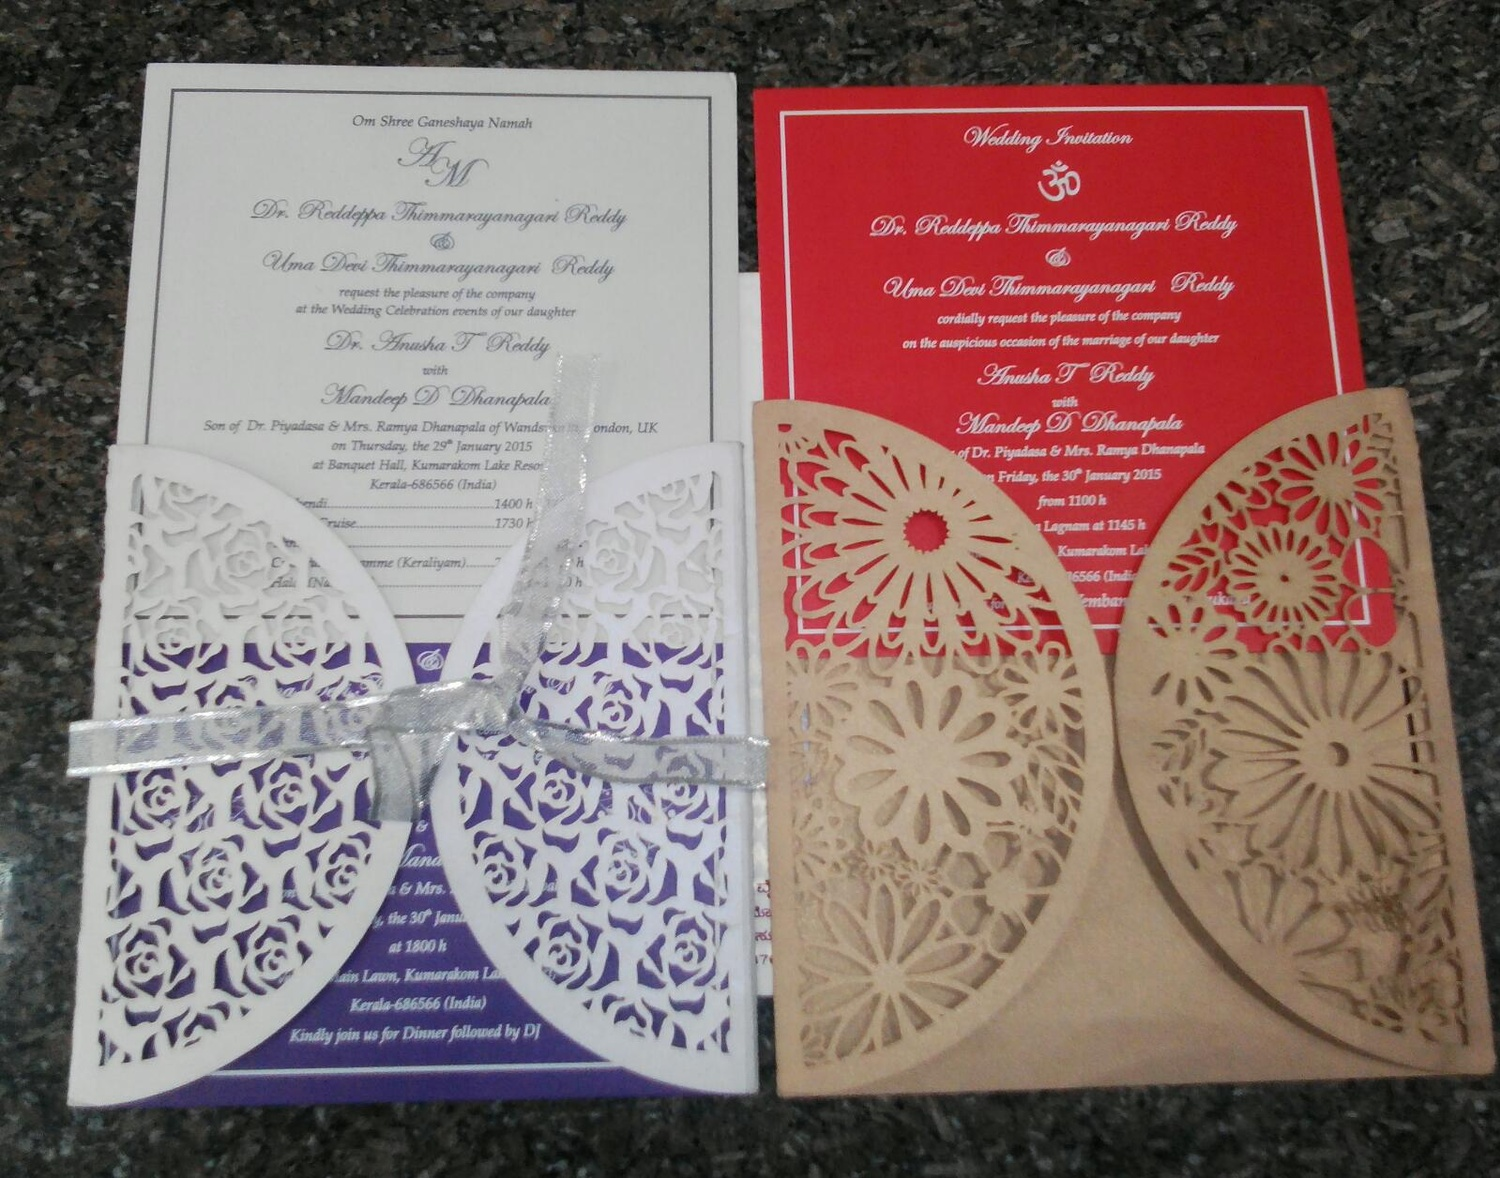 Rajkumar Paper Products, Wedding Invitation Card in Bangalore | WeddingZ